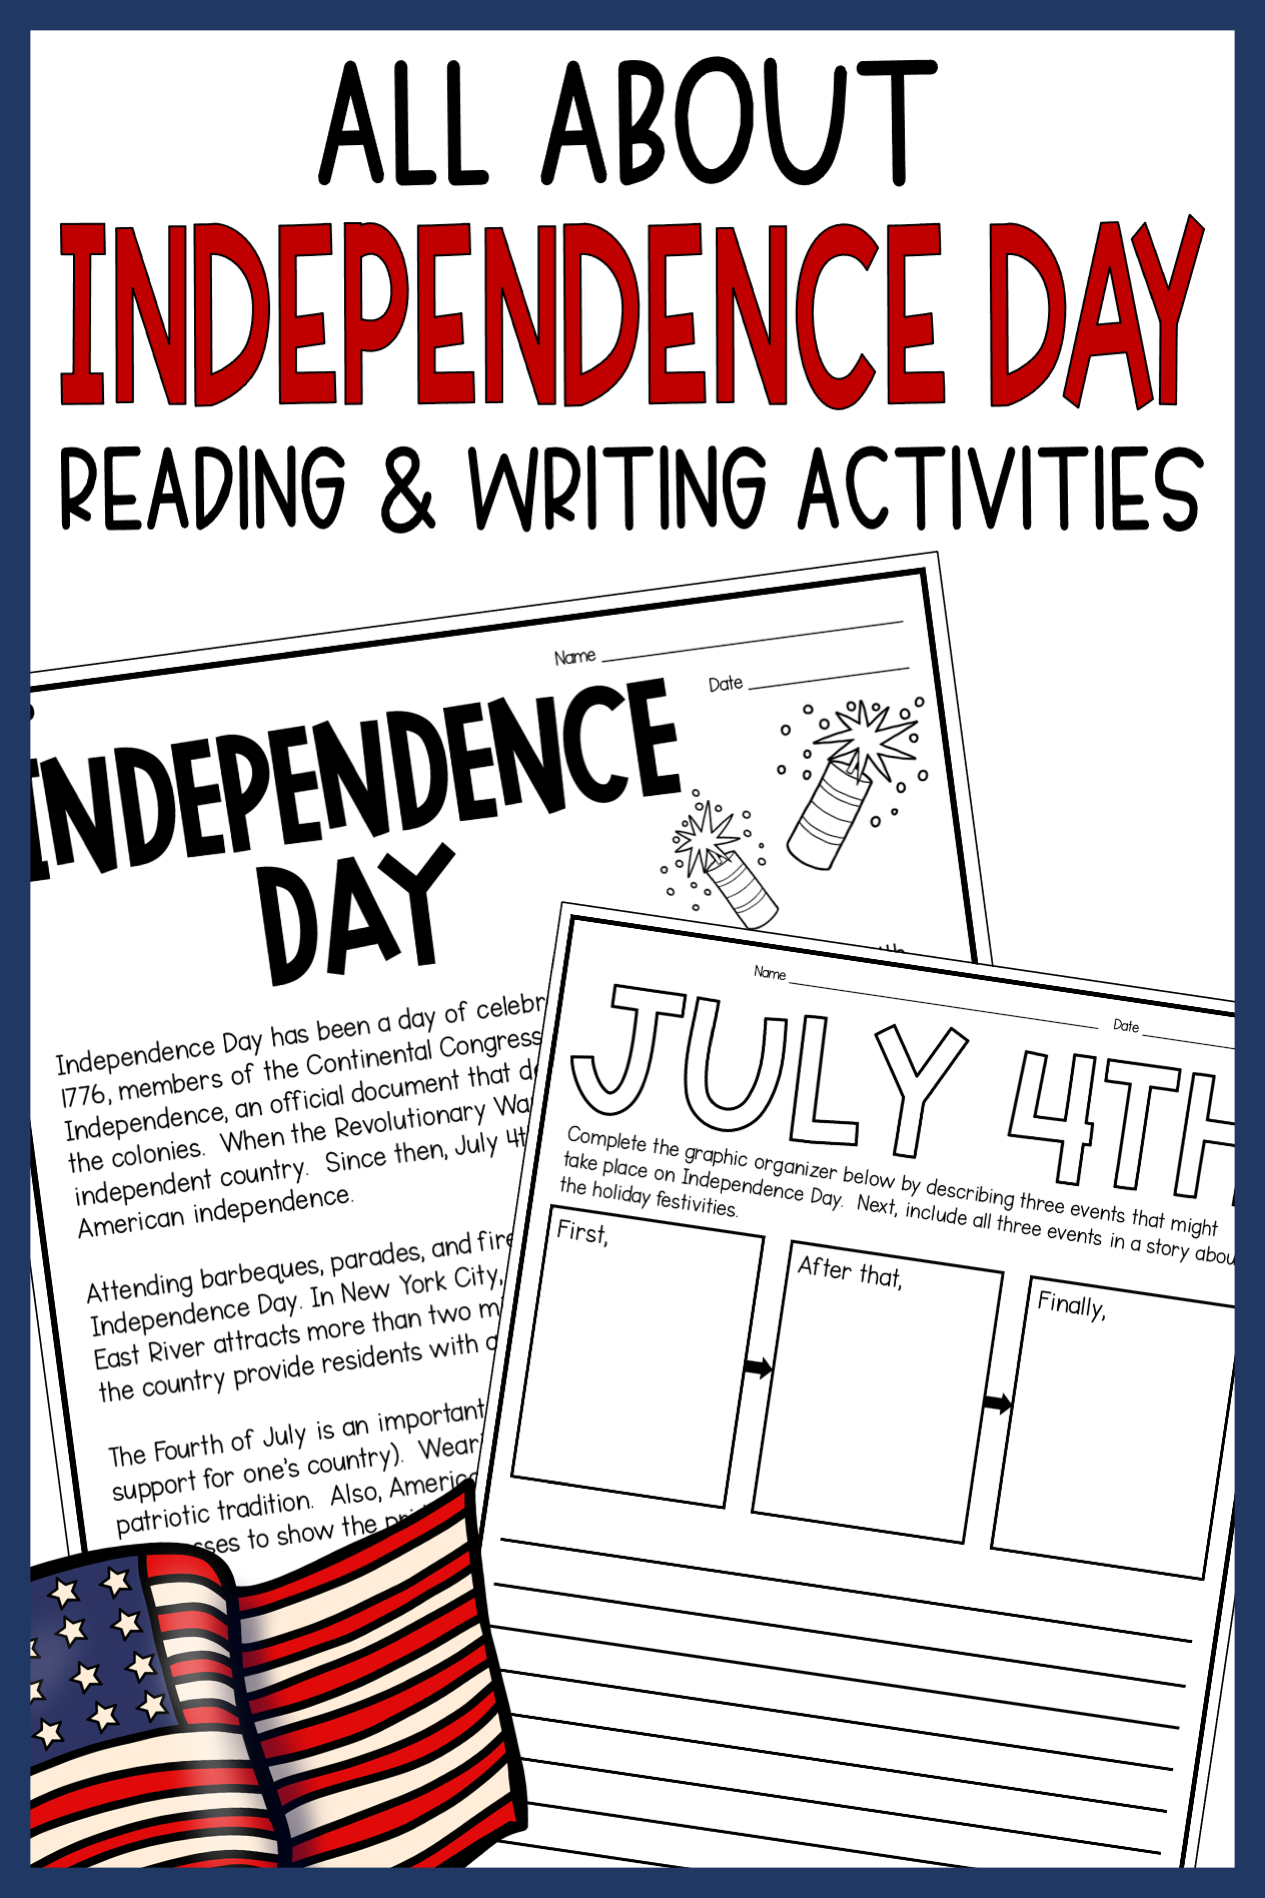 Independence Day Reading And Writing Activities Informational Text In 2021 Writing Activities Reading Comprehension Passages Reading Passages [ 1898 x 1265 Pixel ]